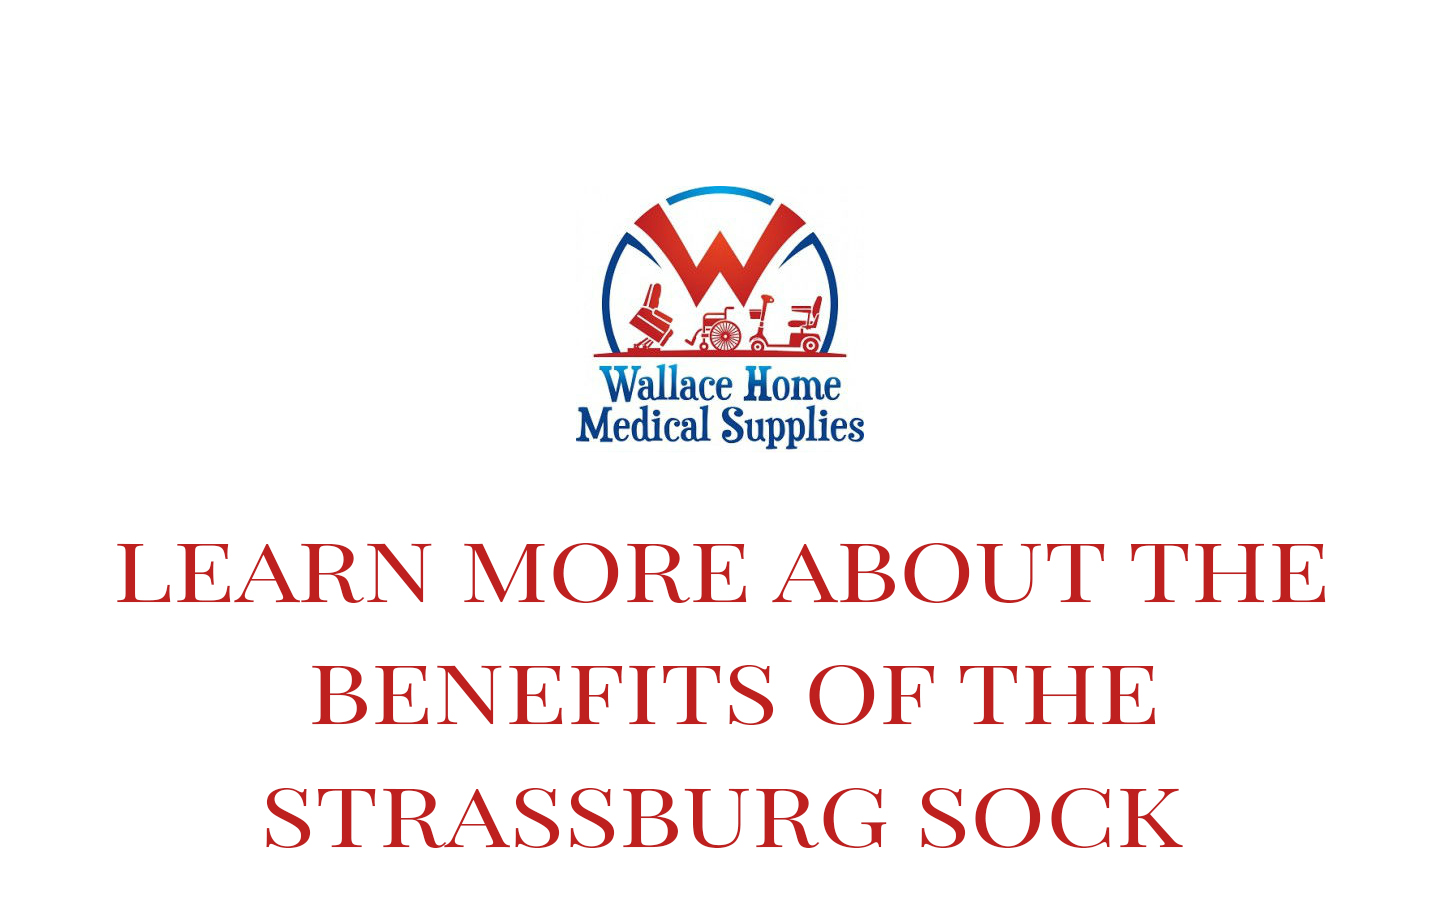 Learn More About The Benefits of the Strassburg sock help with plantar fasciitis pain